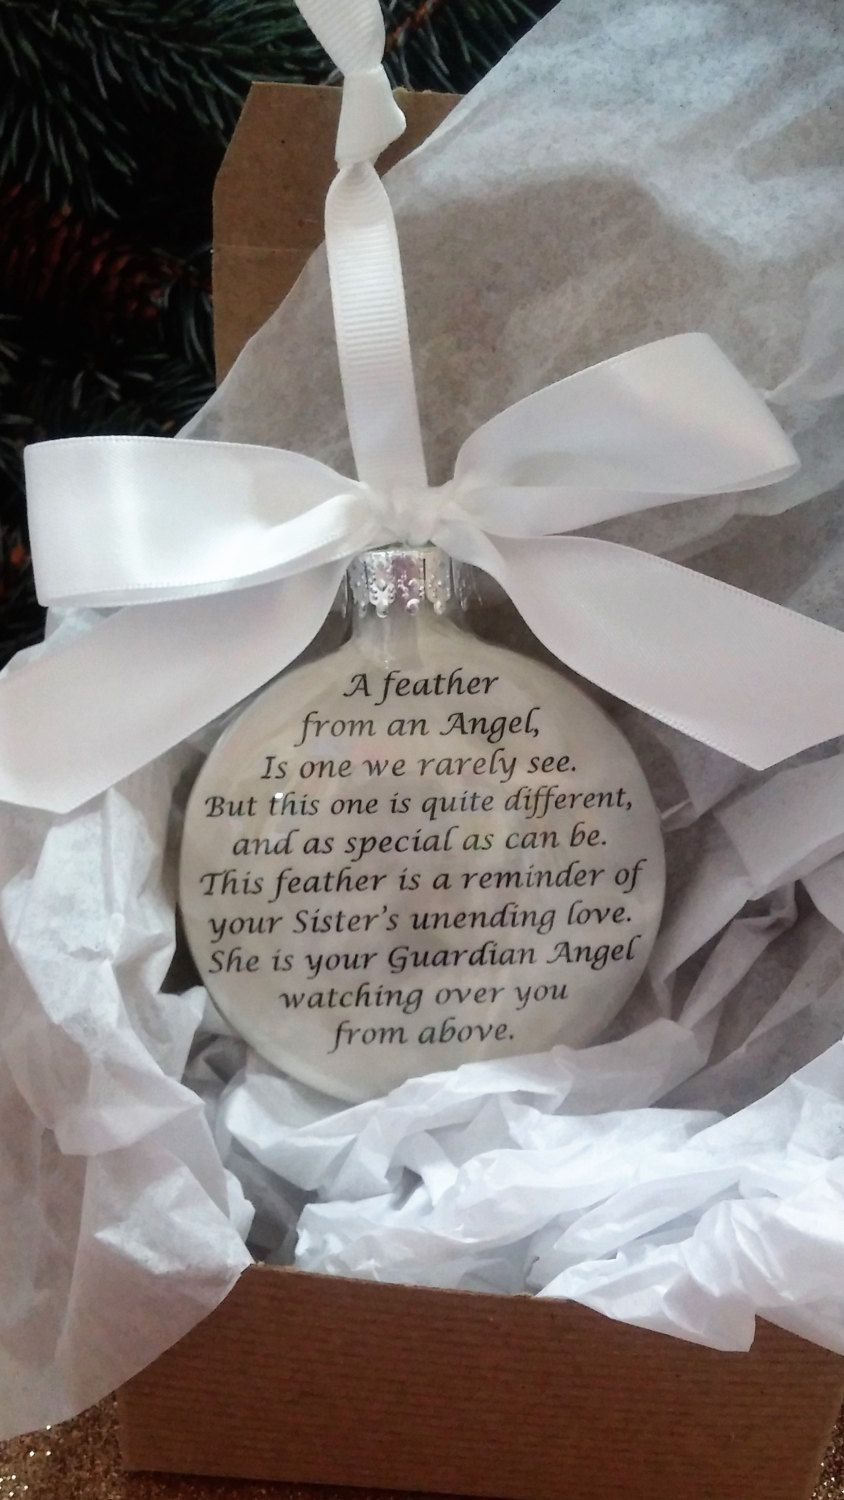 Sister Memorial Christmas Ornament Gift A Feather From A Guardian